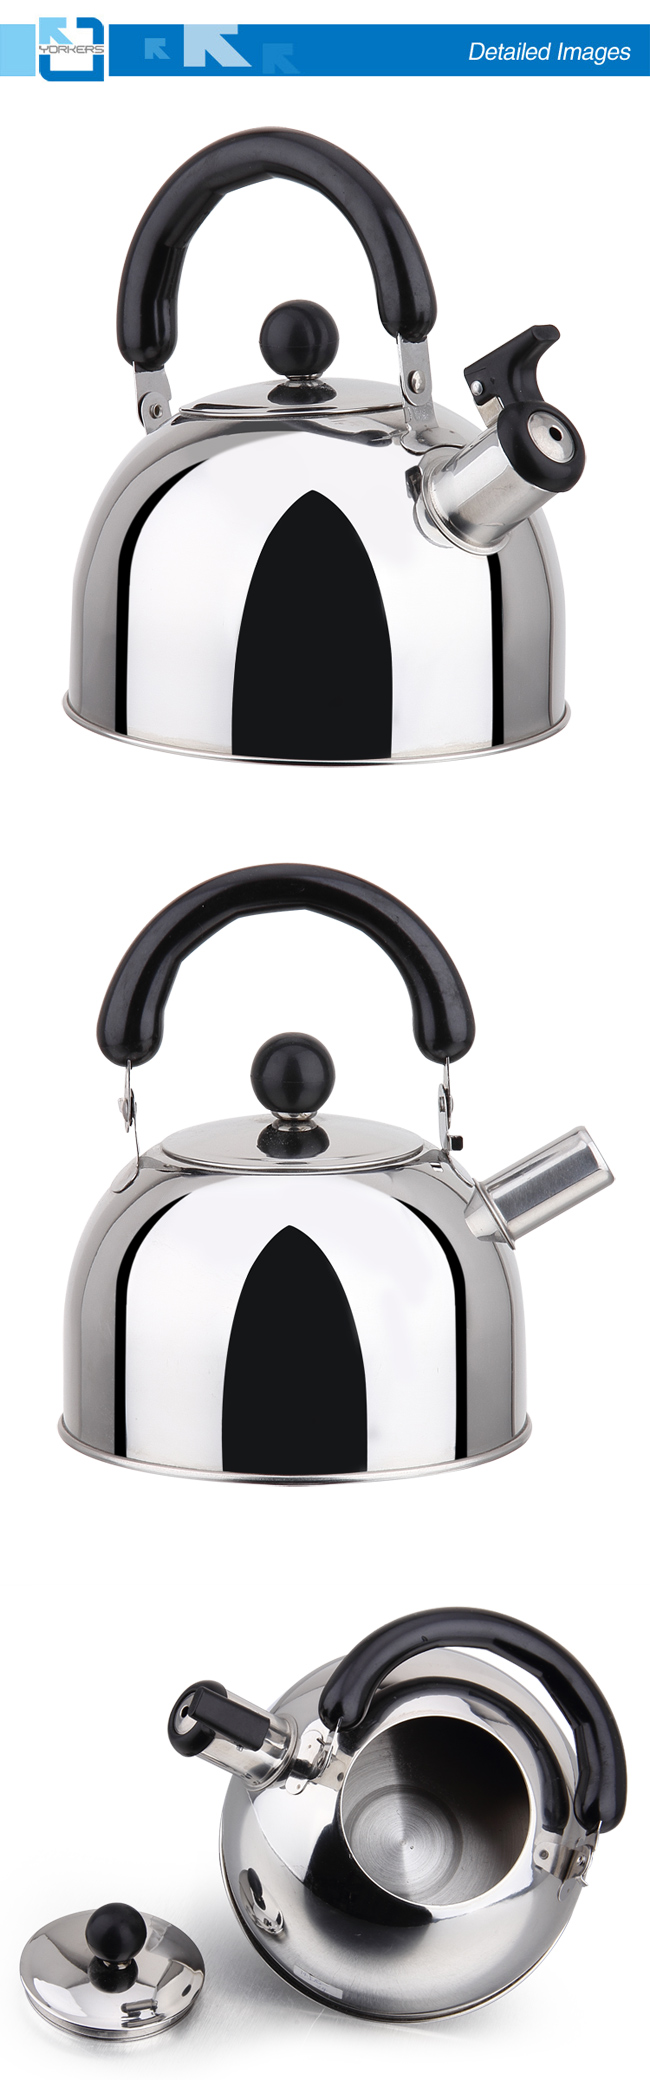 Flat Bottom Tyle Stainless Steel Whistling Kettle and Water Kettle